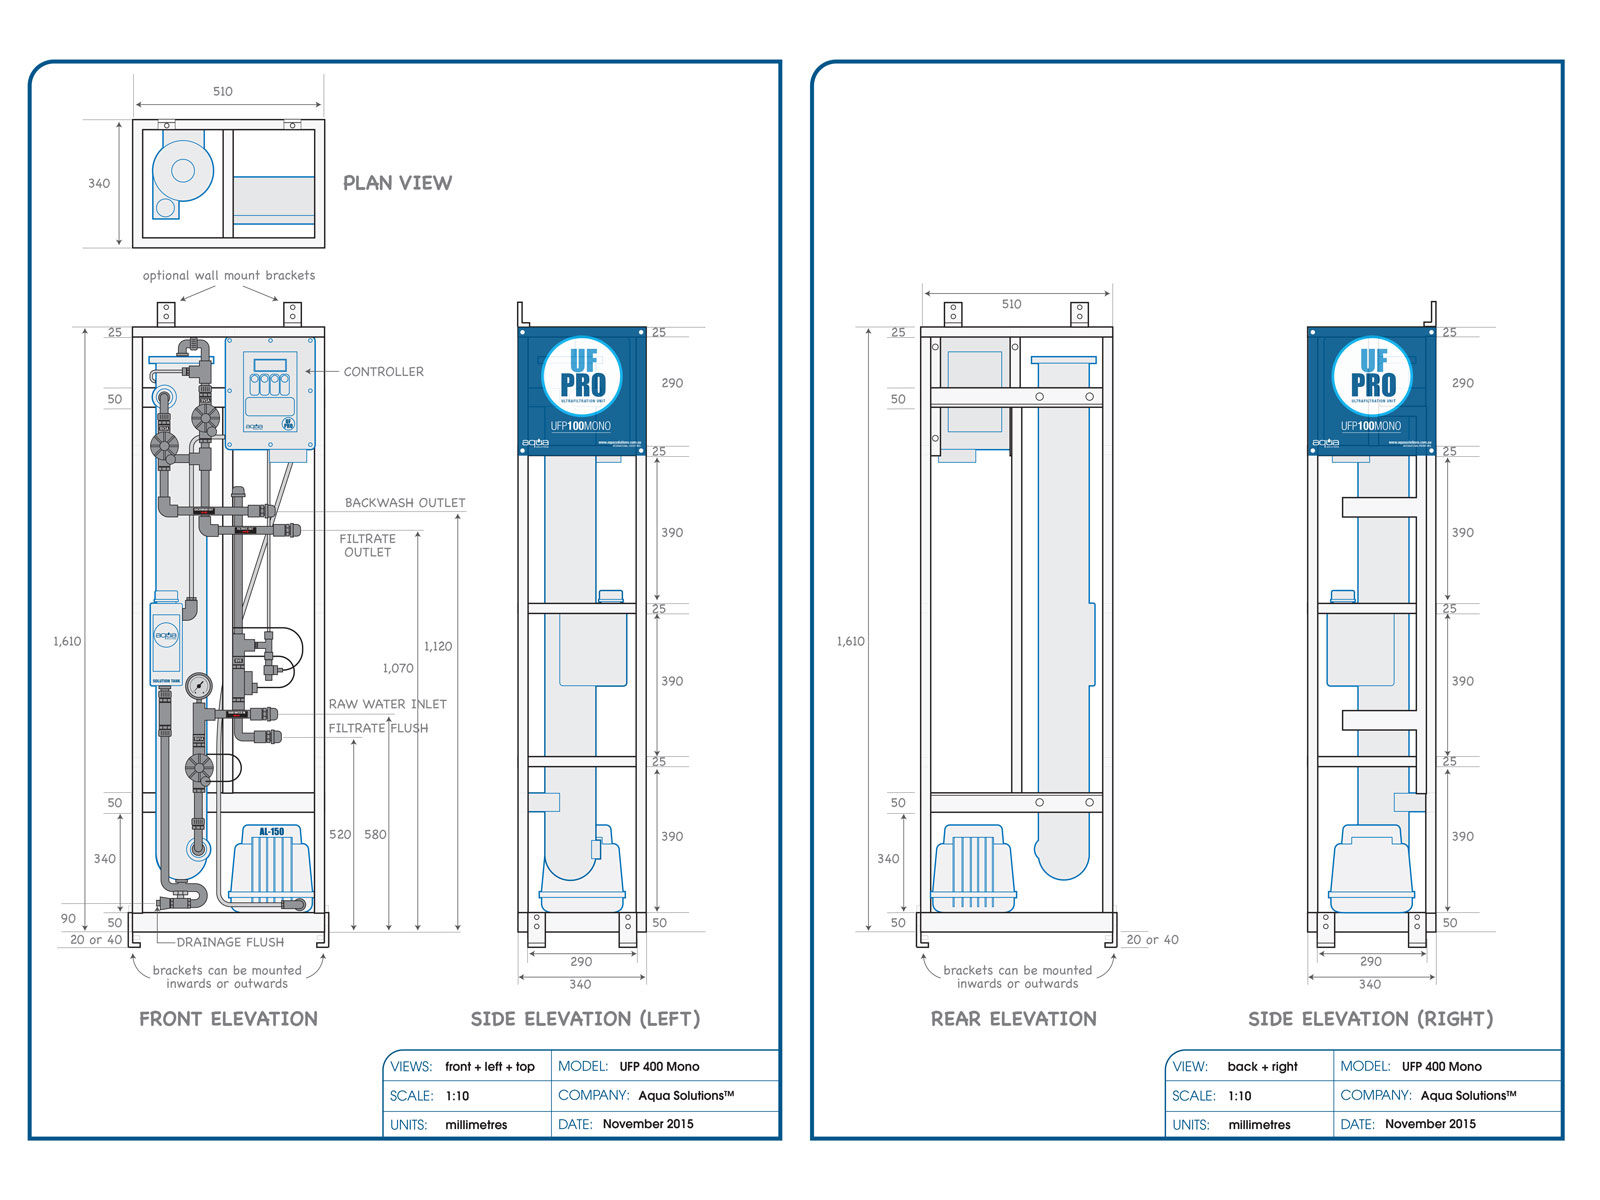 2D Technical Blueprint Product Drawings